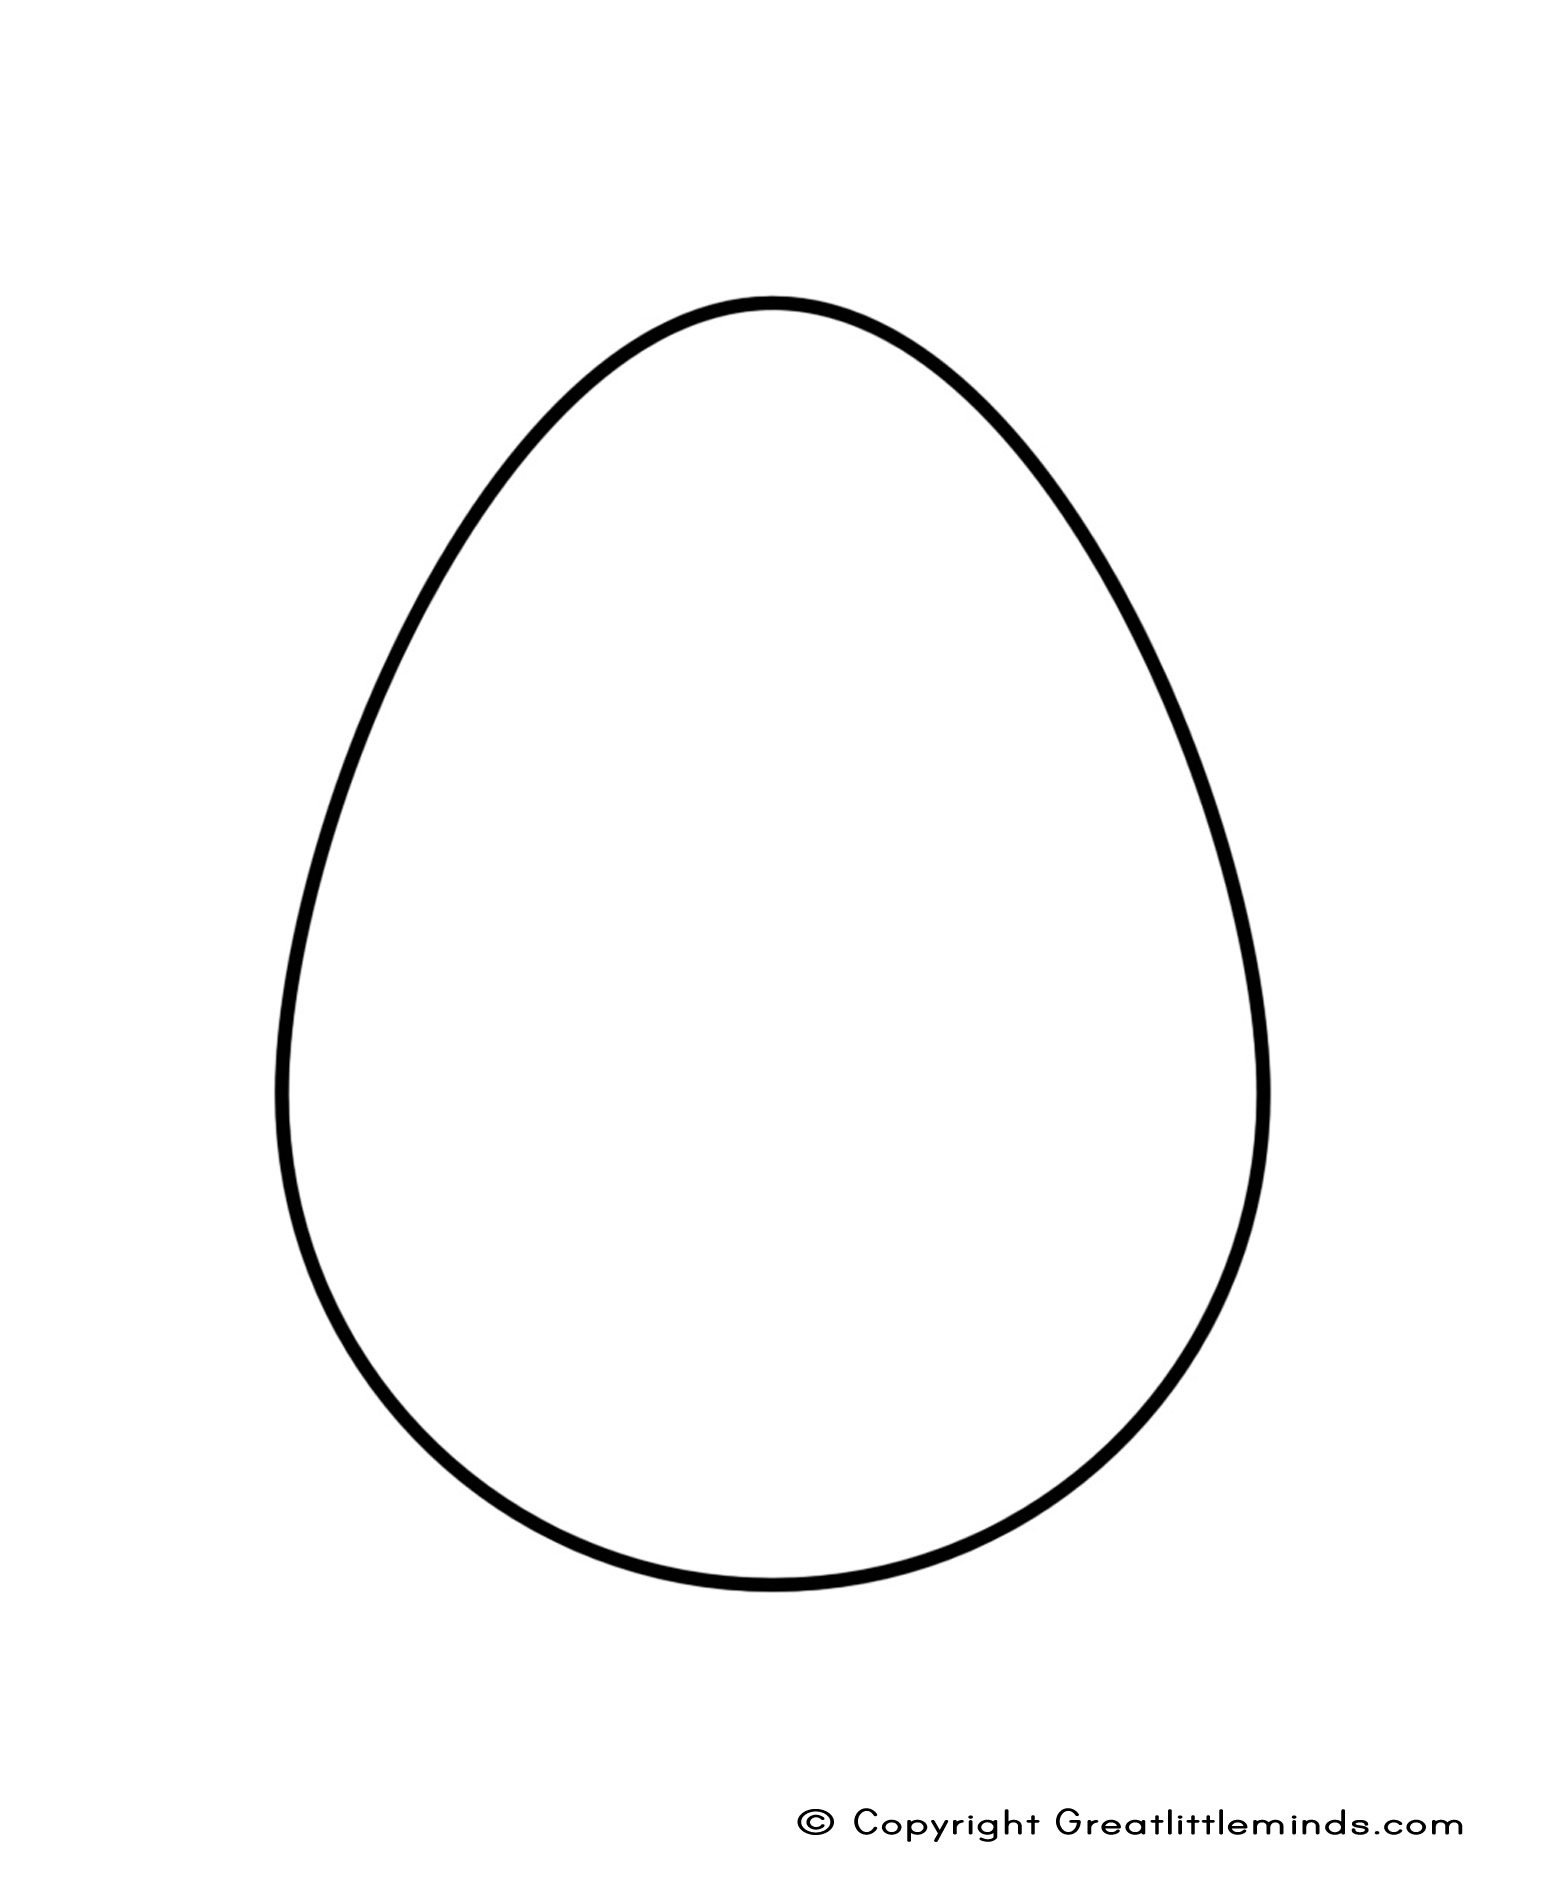 complete the picture easter egg design